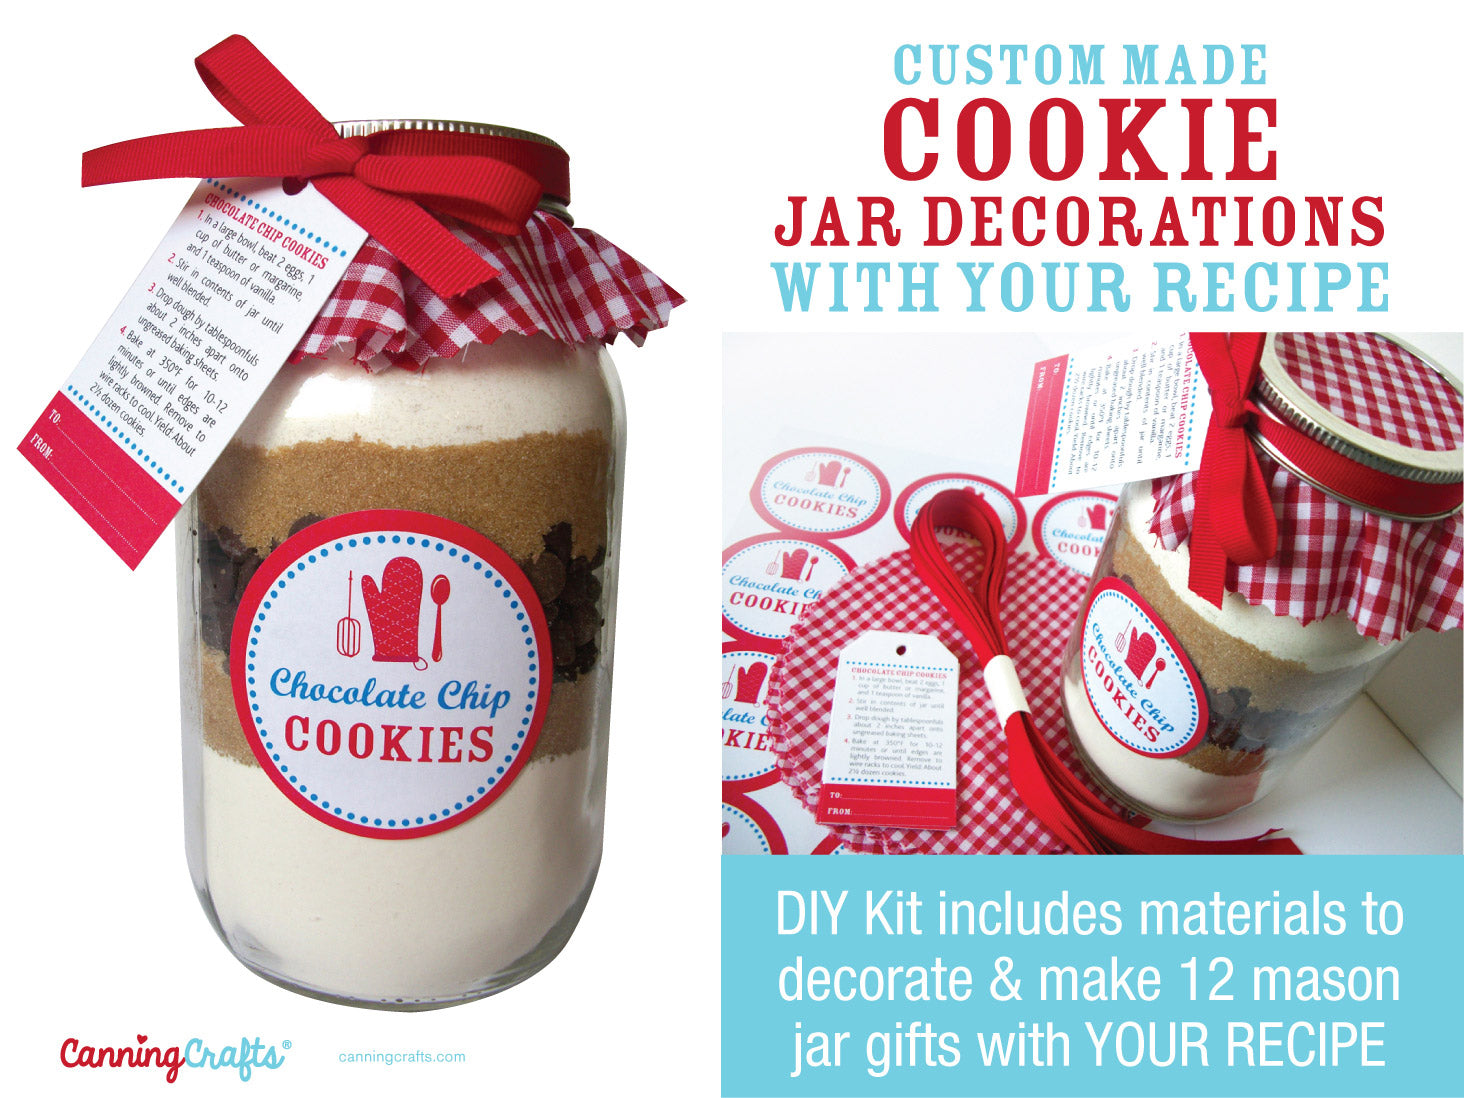 Custom Cookie Mason Jar Kit decorations made for YOUR recipe | CanningCrafts.com